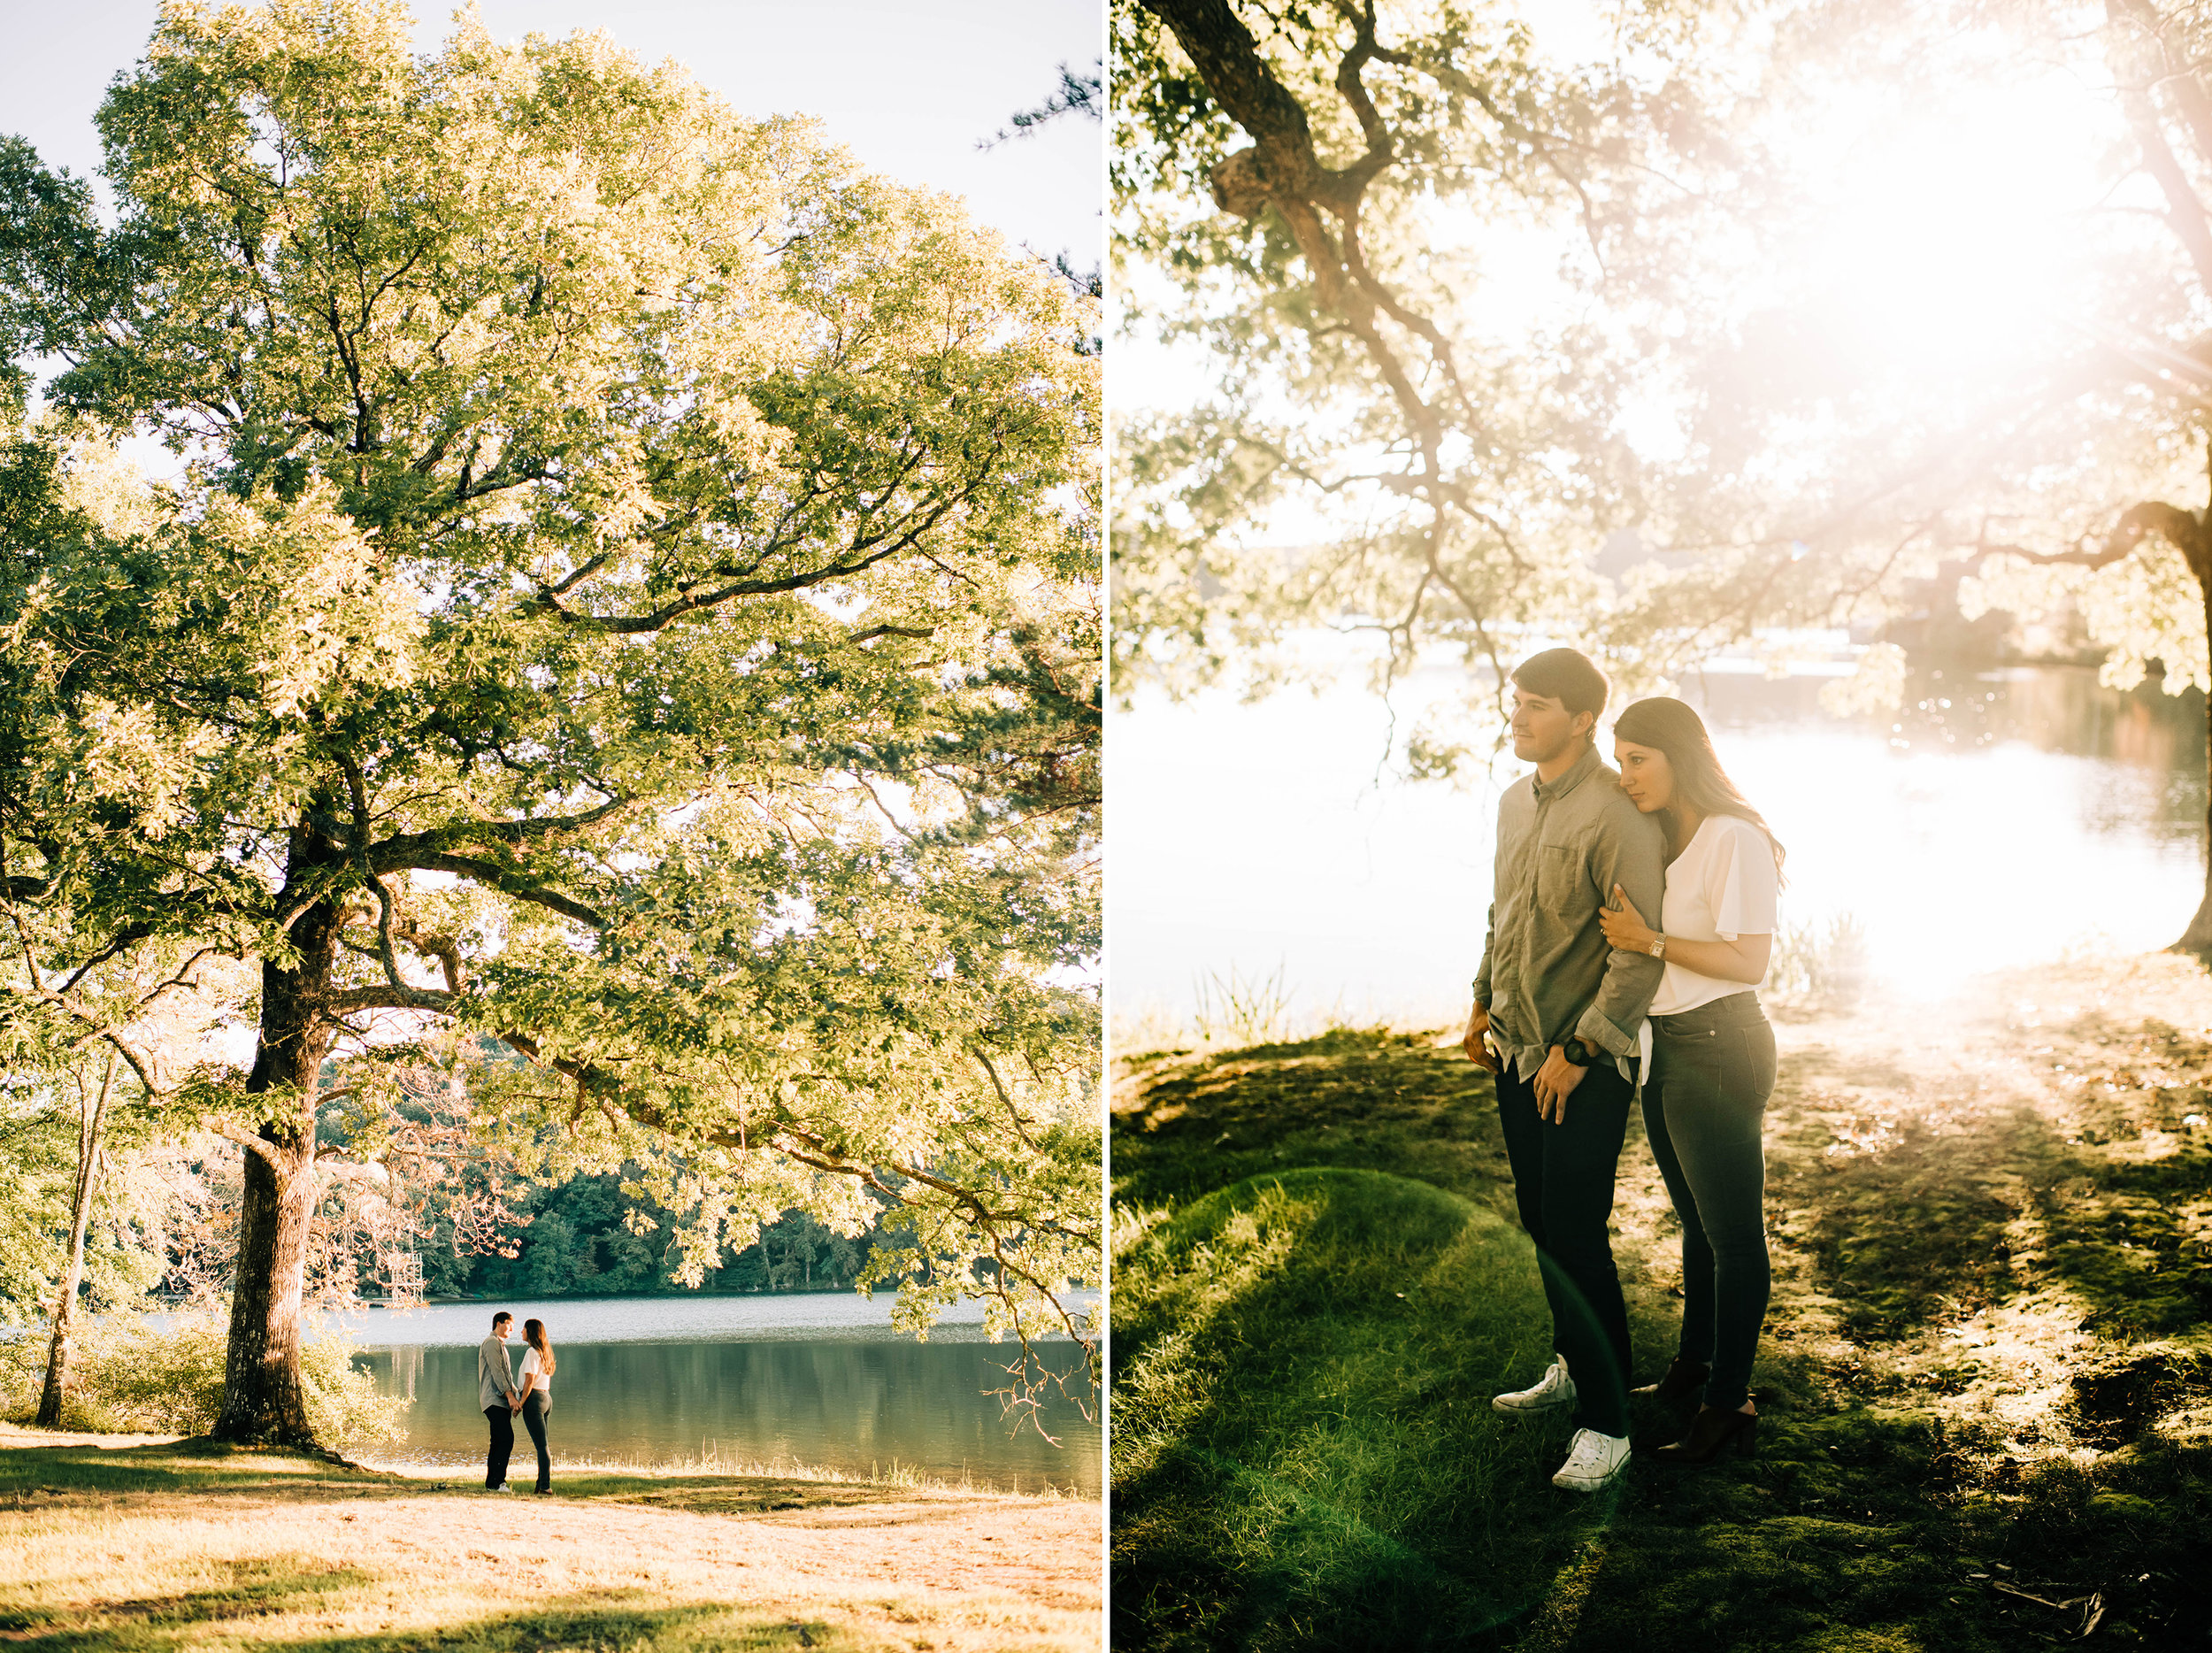 san francisco oakland bay area california sf atlanta georgia camp wes anderson moonrise kingdom inspired canoe engagement nontraditional wedding photographer -72.jpg